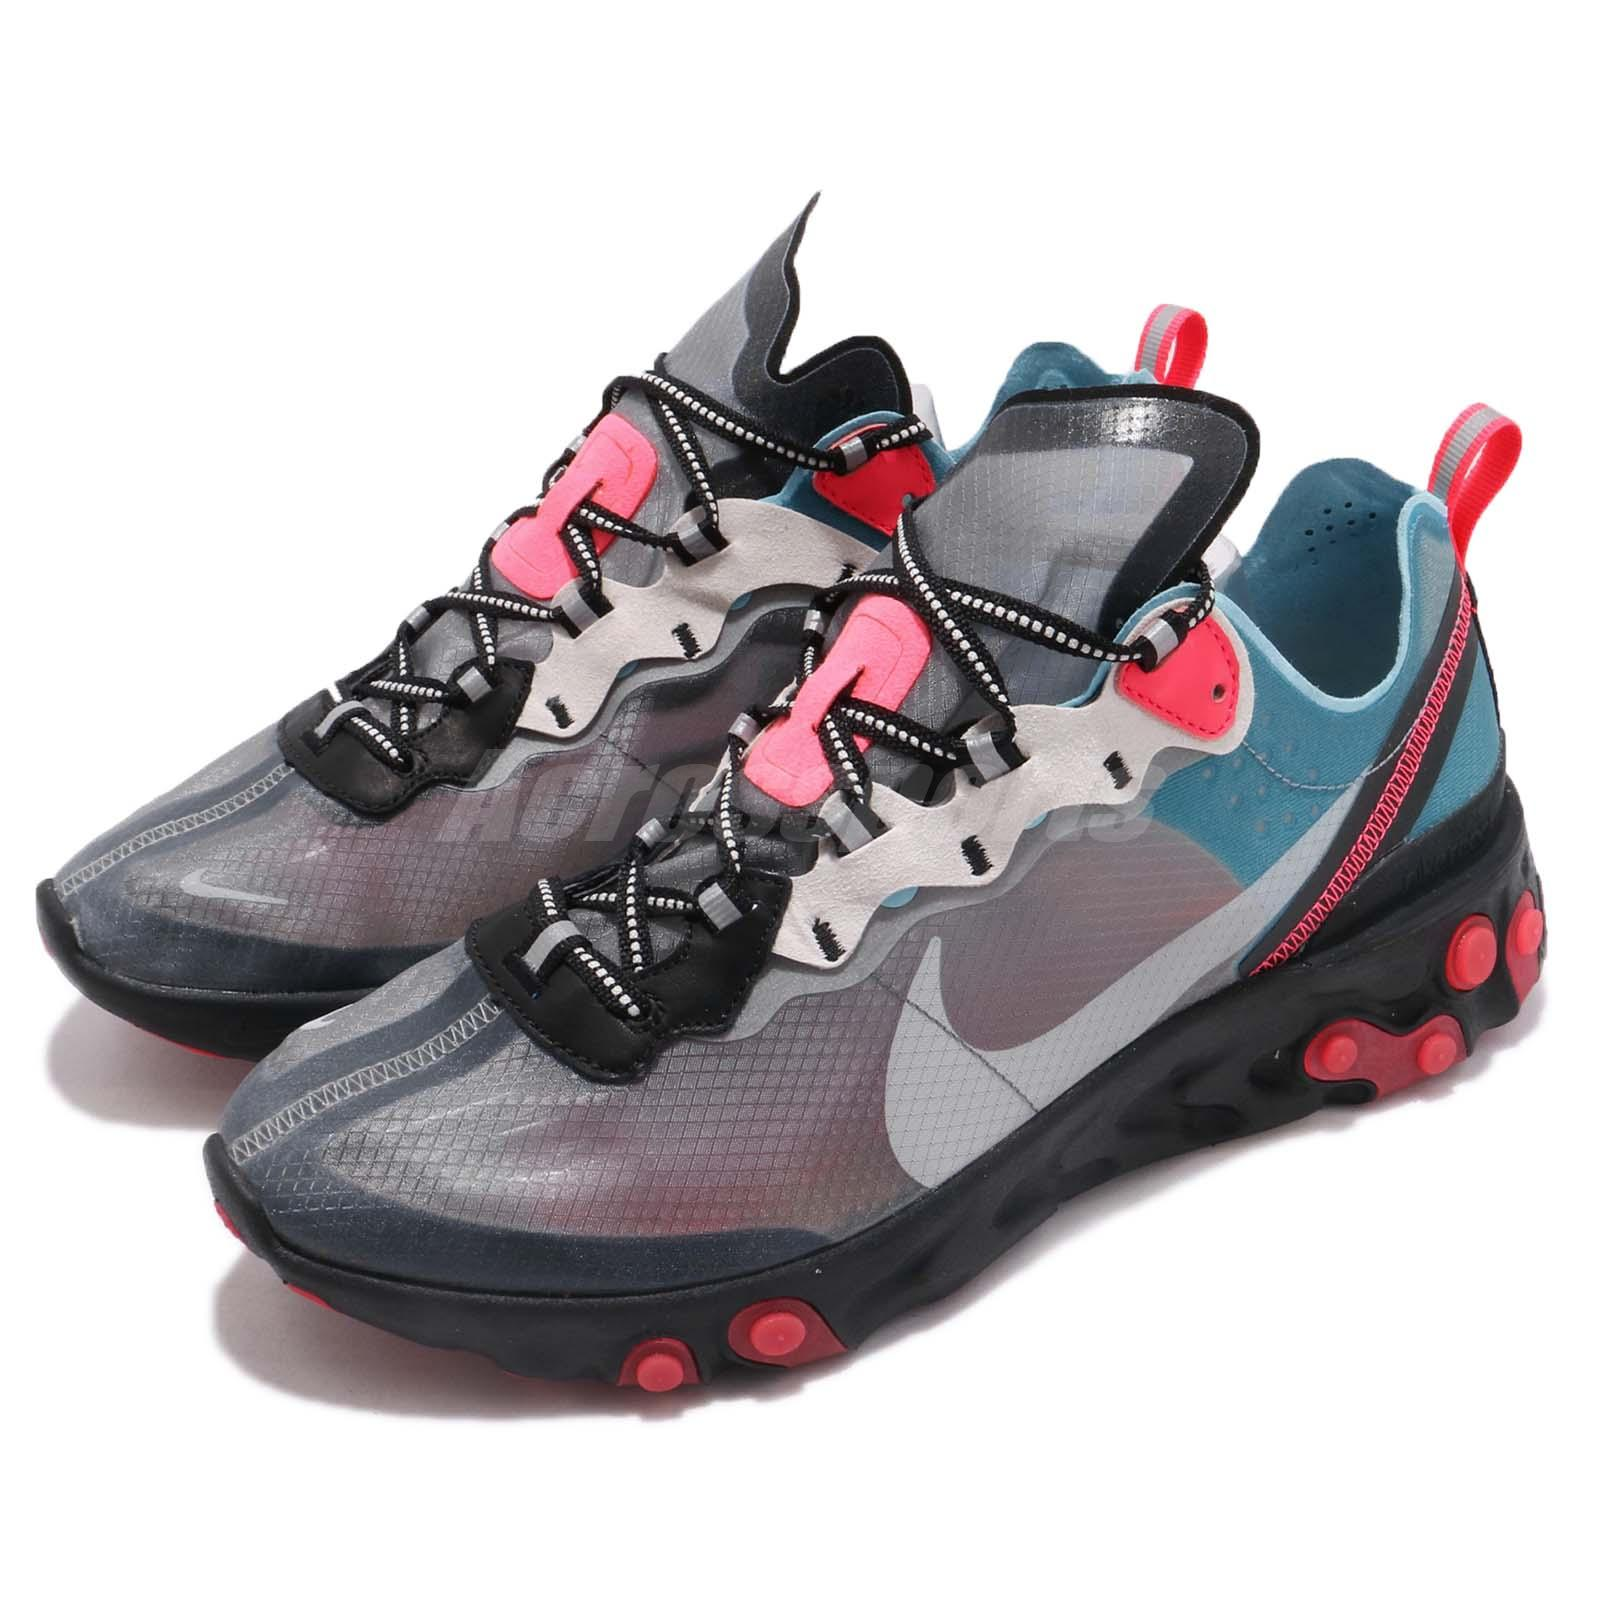 super popular 1d392 d0cc7 Details about Nike React Element 87 Blue Chill Solar Red Grey Mens Running  Shoes AQ1090-006